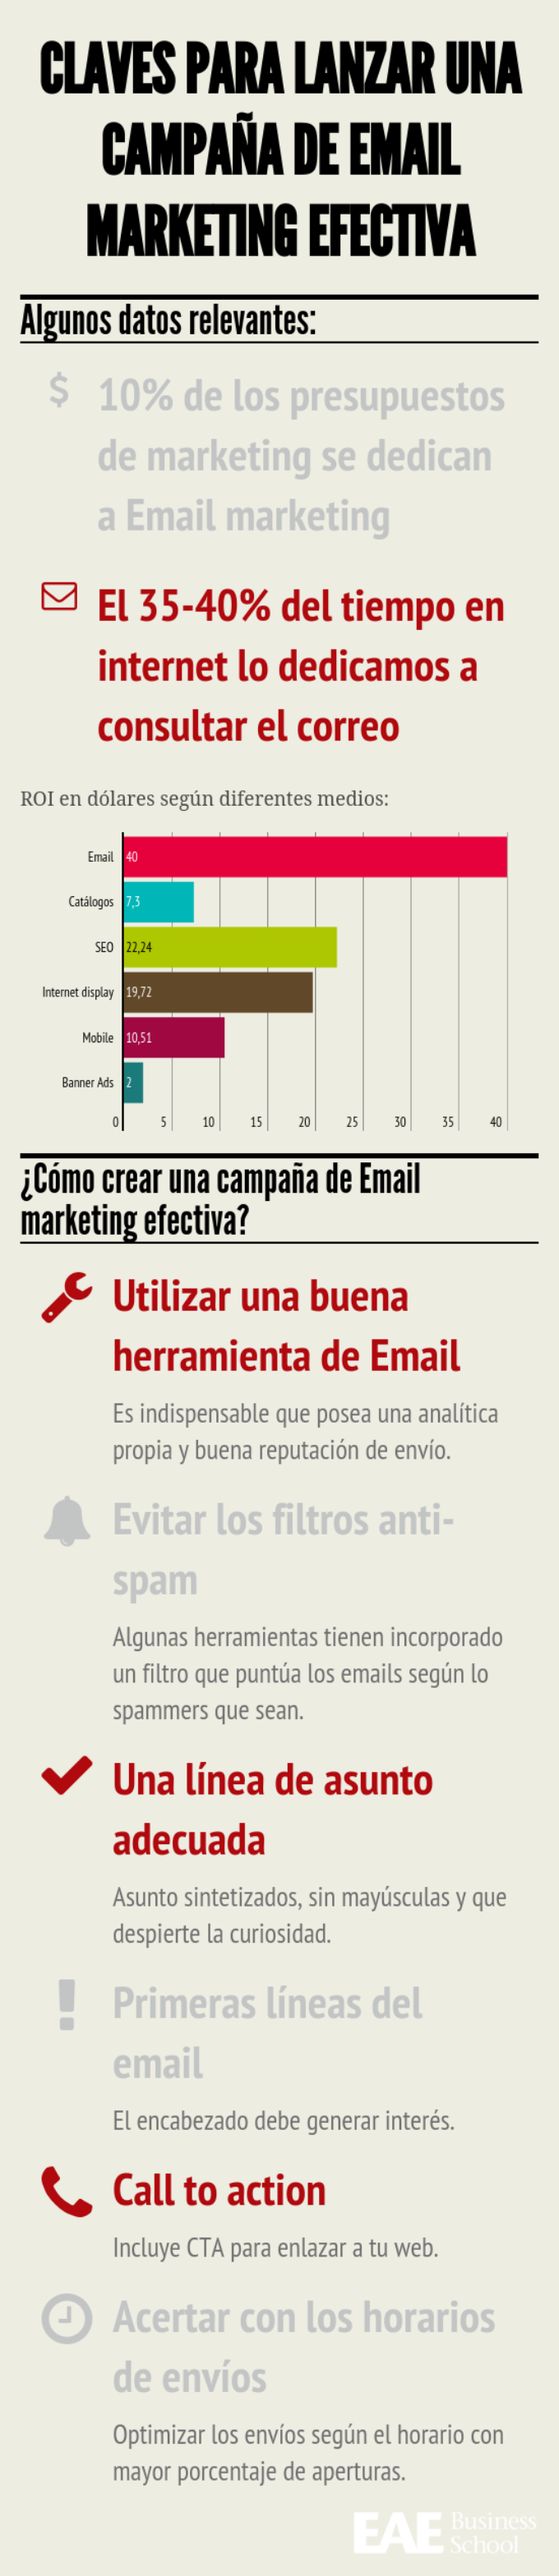 Infografía: Crear una campaña de Email marketing efectiva